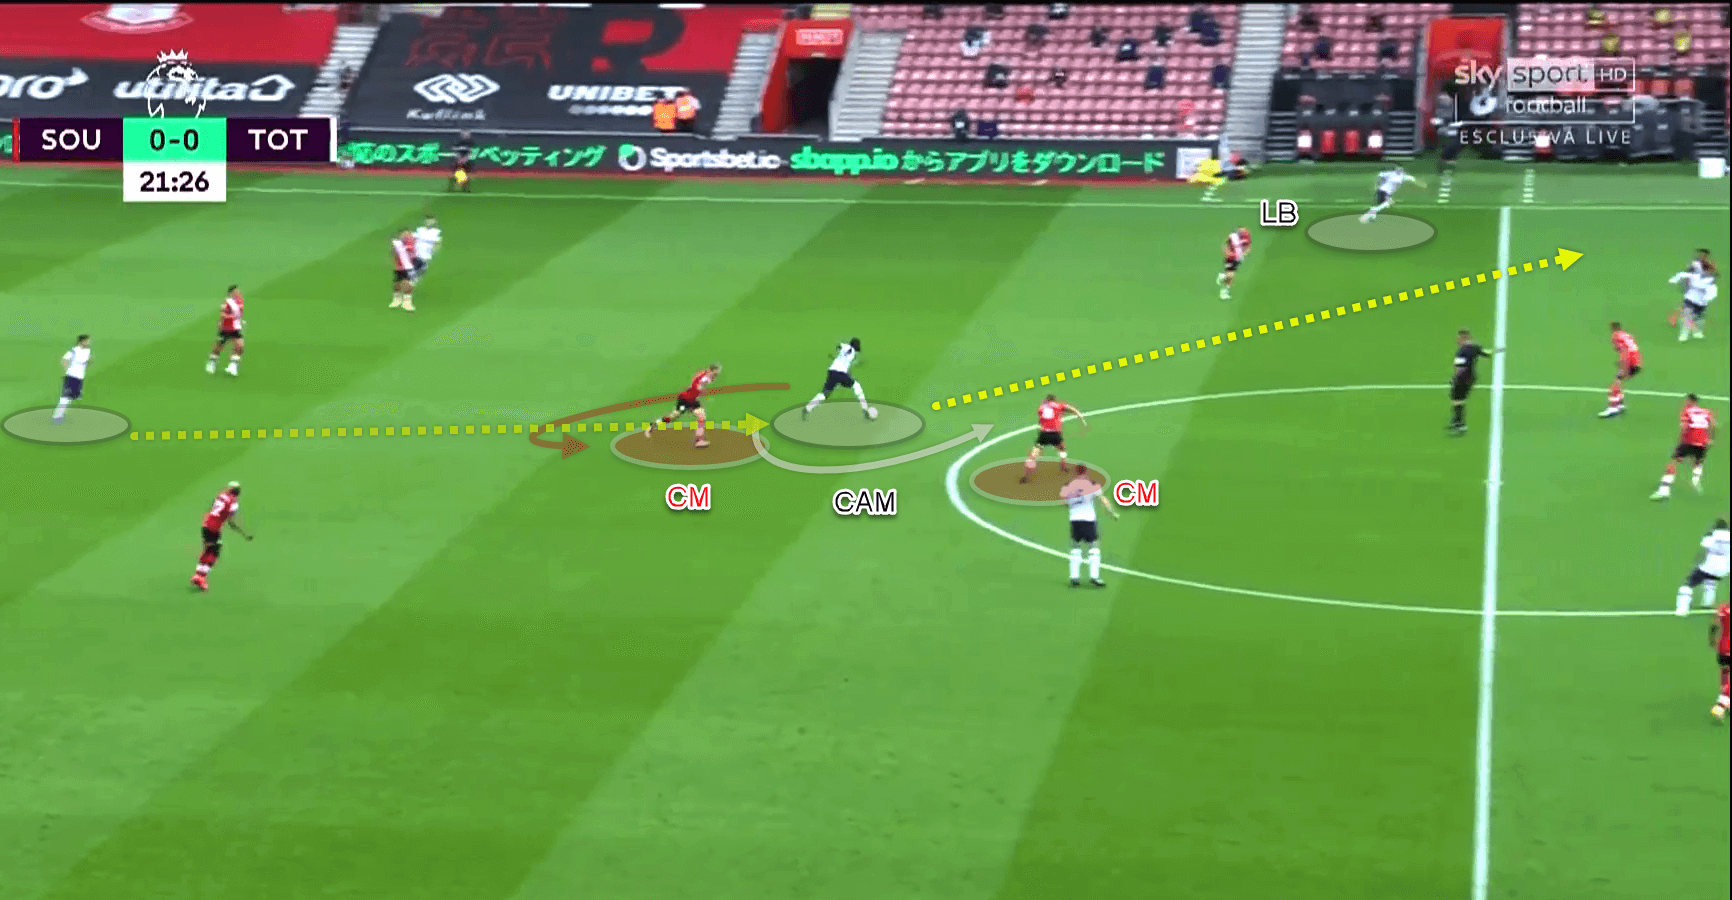 Premier League 2020/21 - Southampton vs Tottenham - tactical analysis - tactics